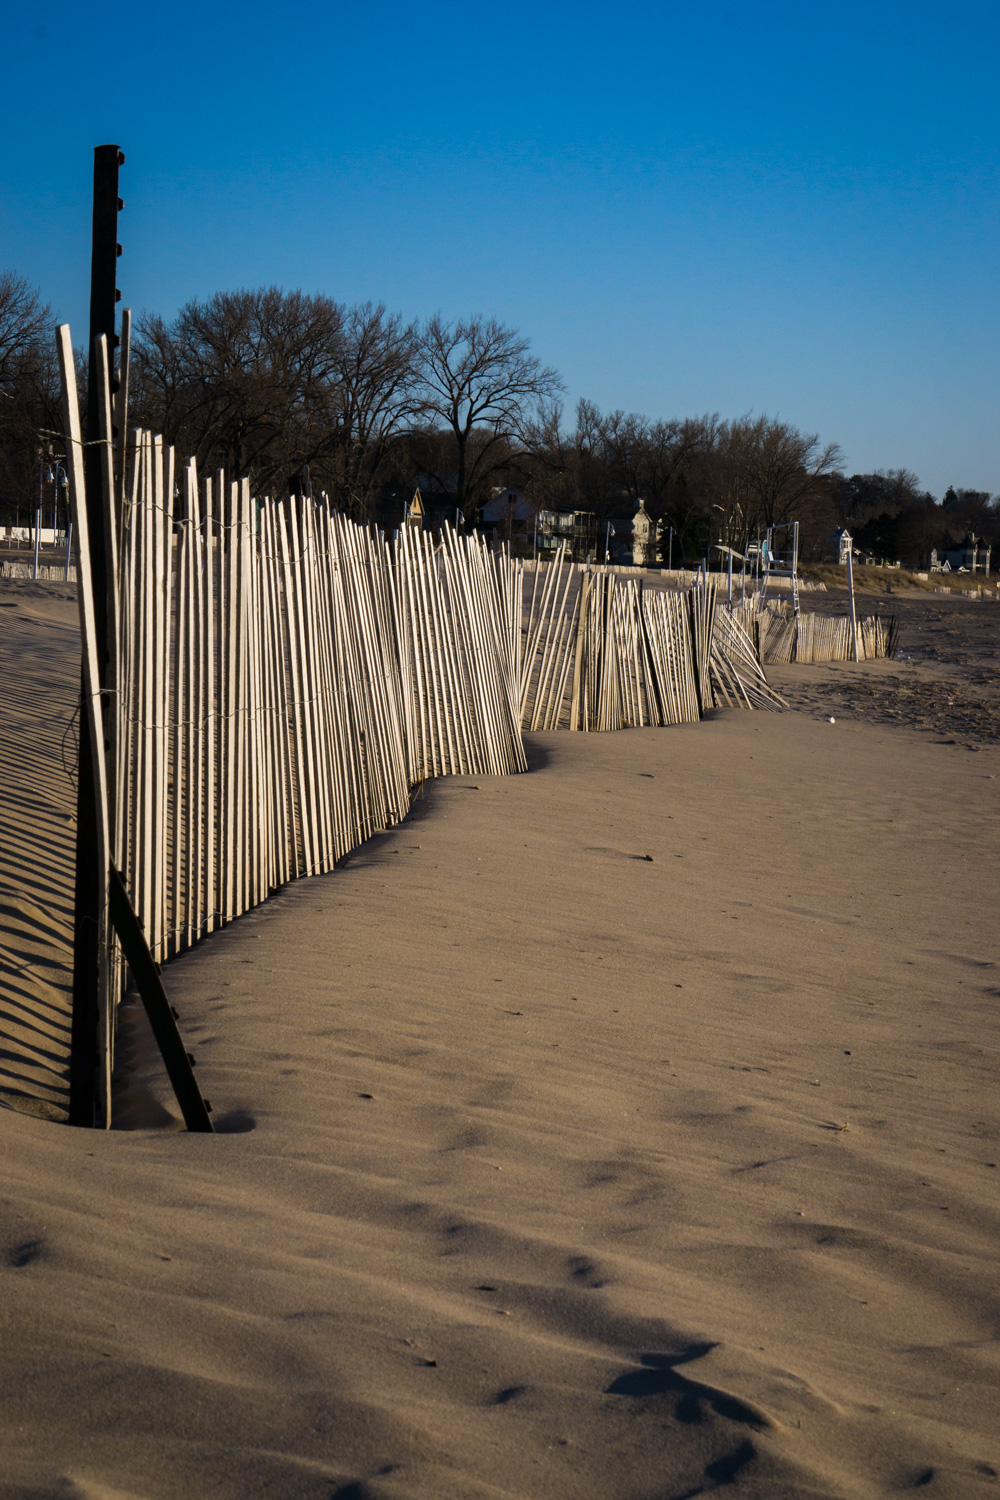 Fence standing among the silver sands